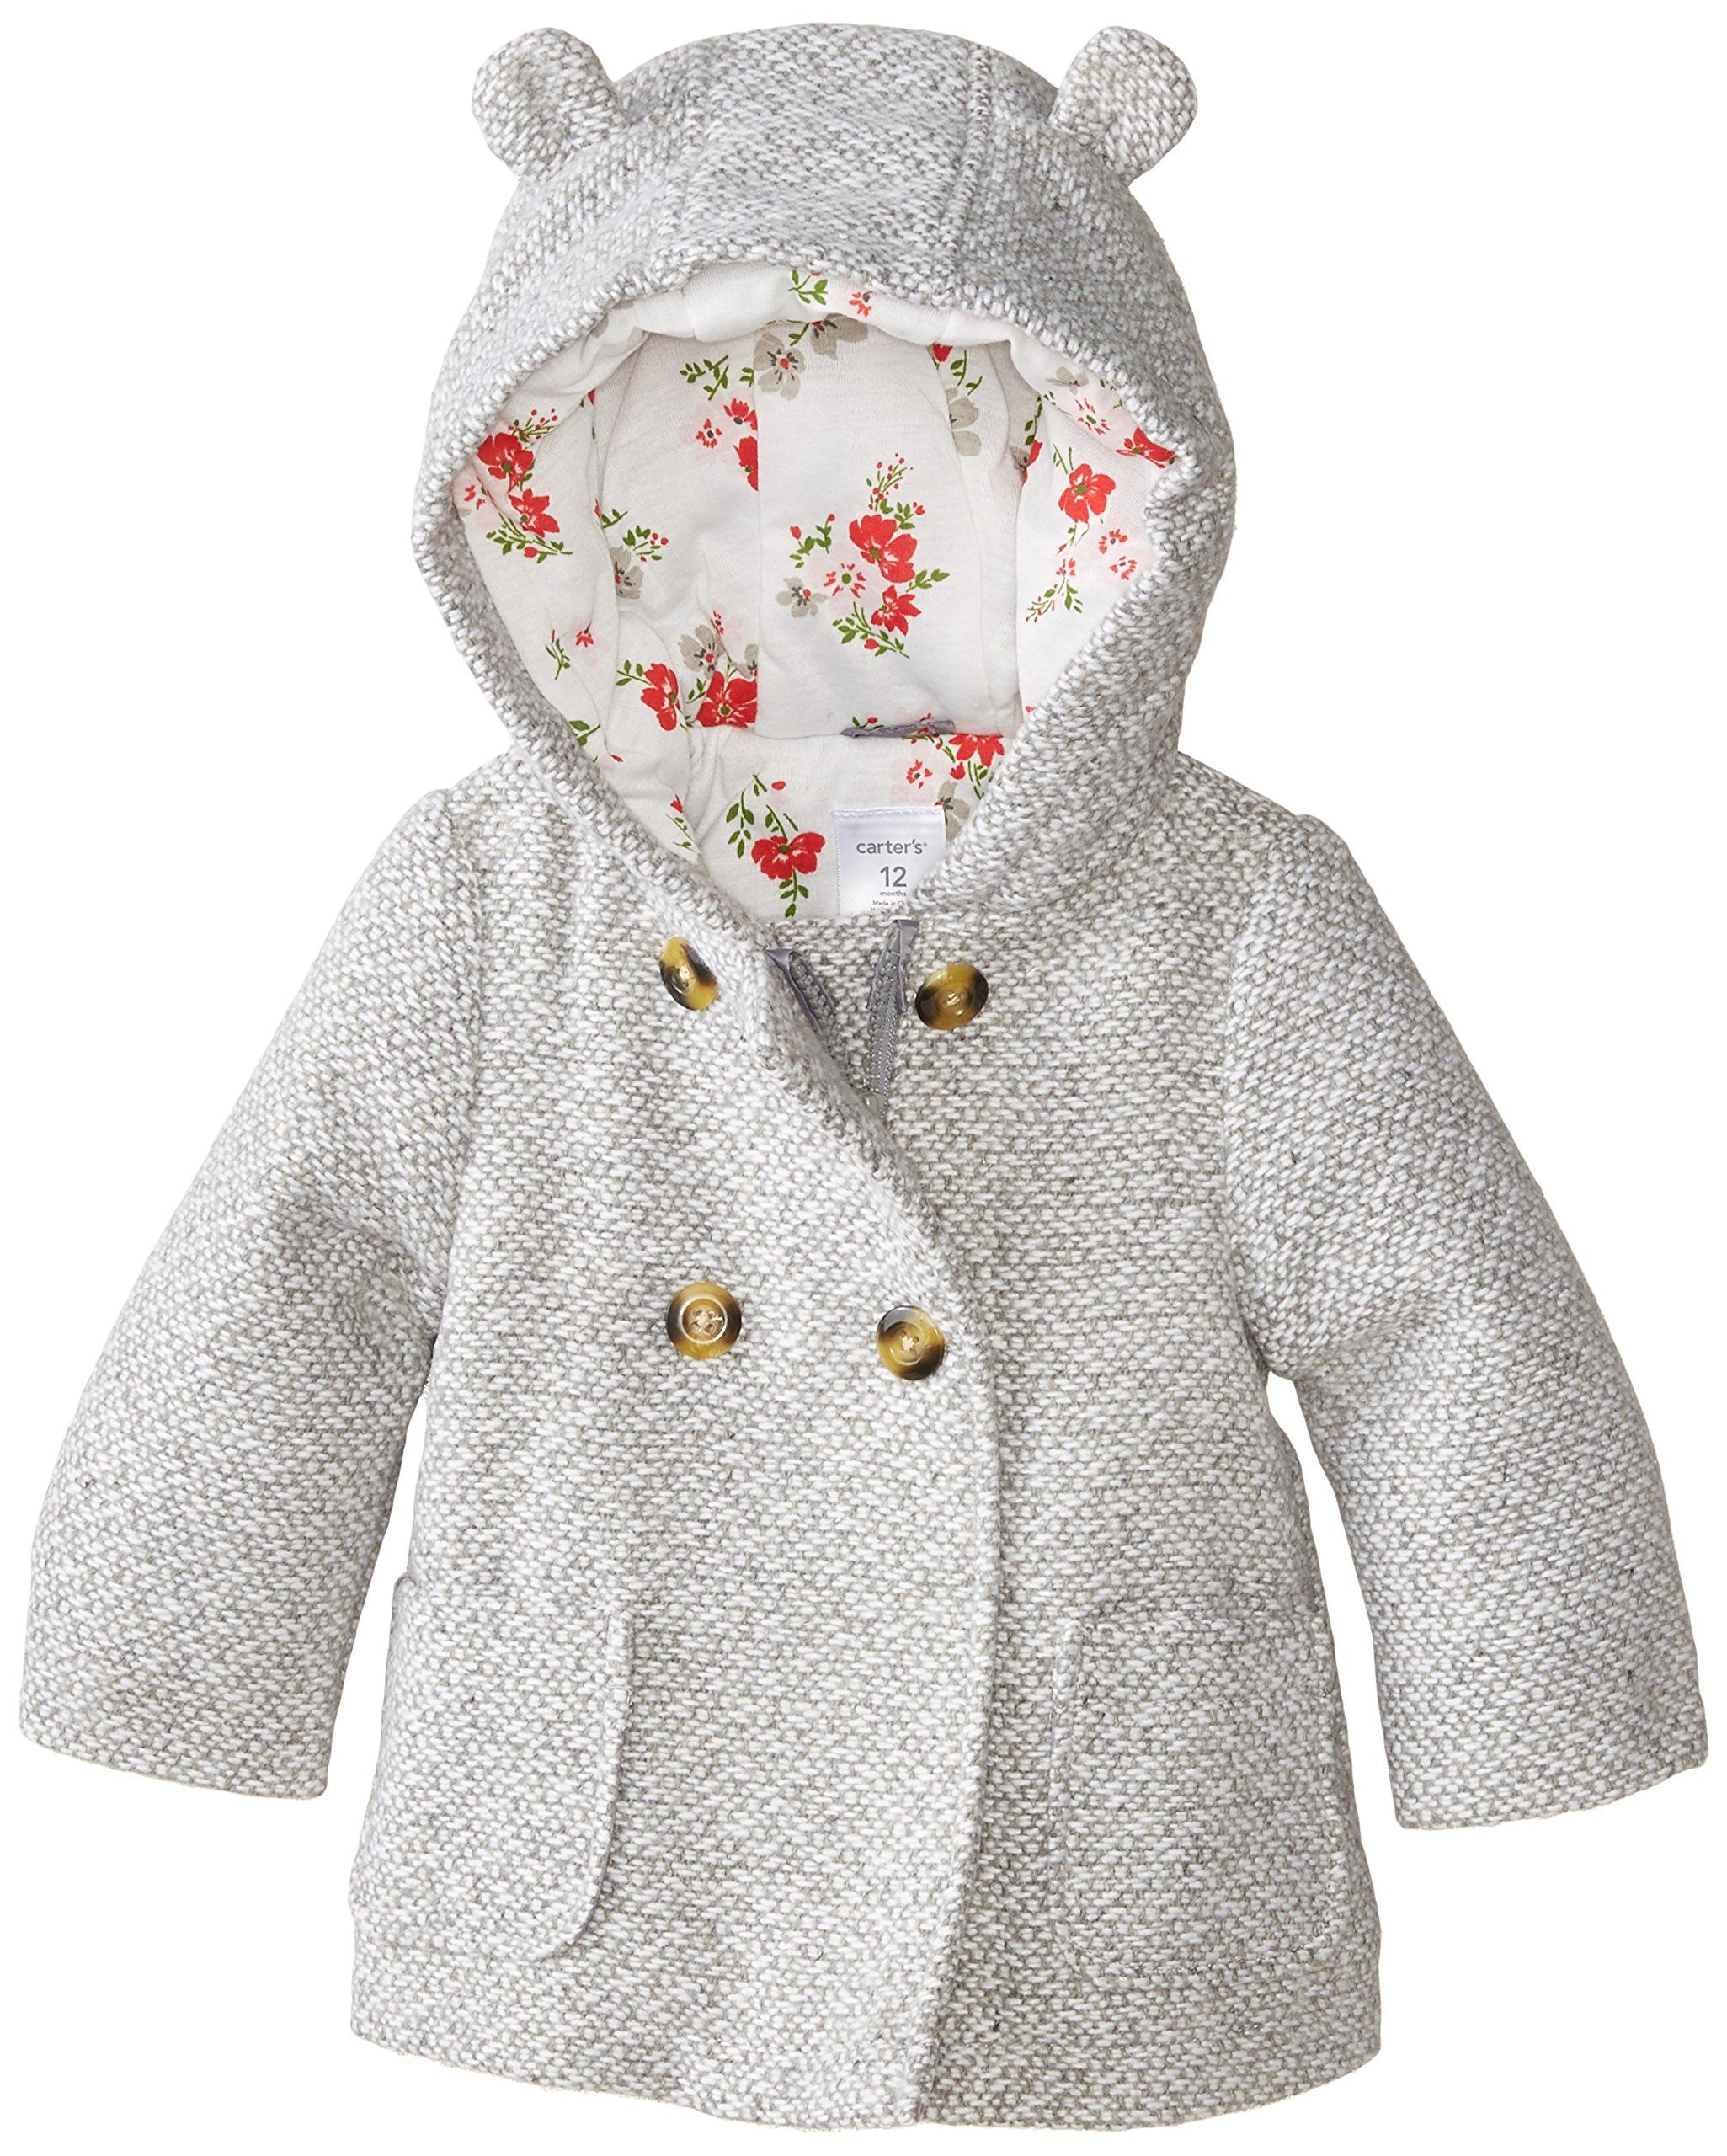 e2b5739de Amazon.com  Carter s Baby Girls  Infants Trans Single Jacket ...